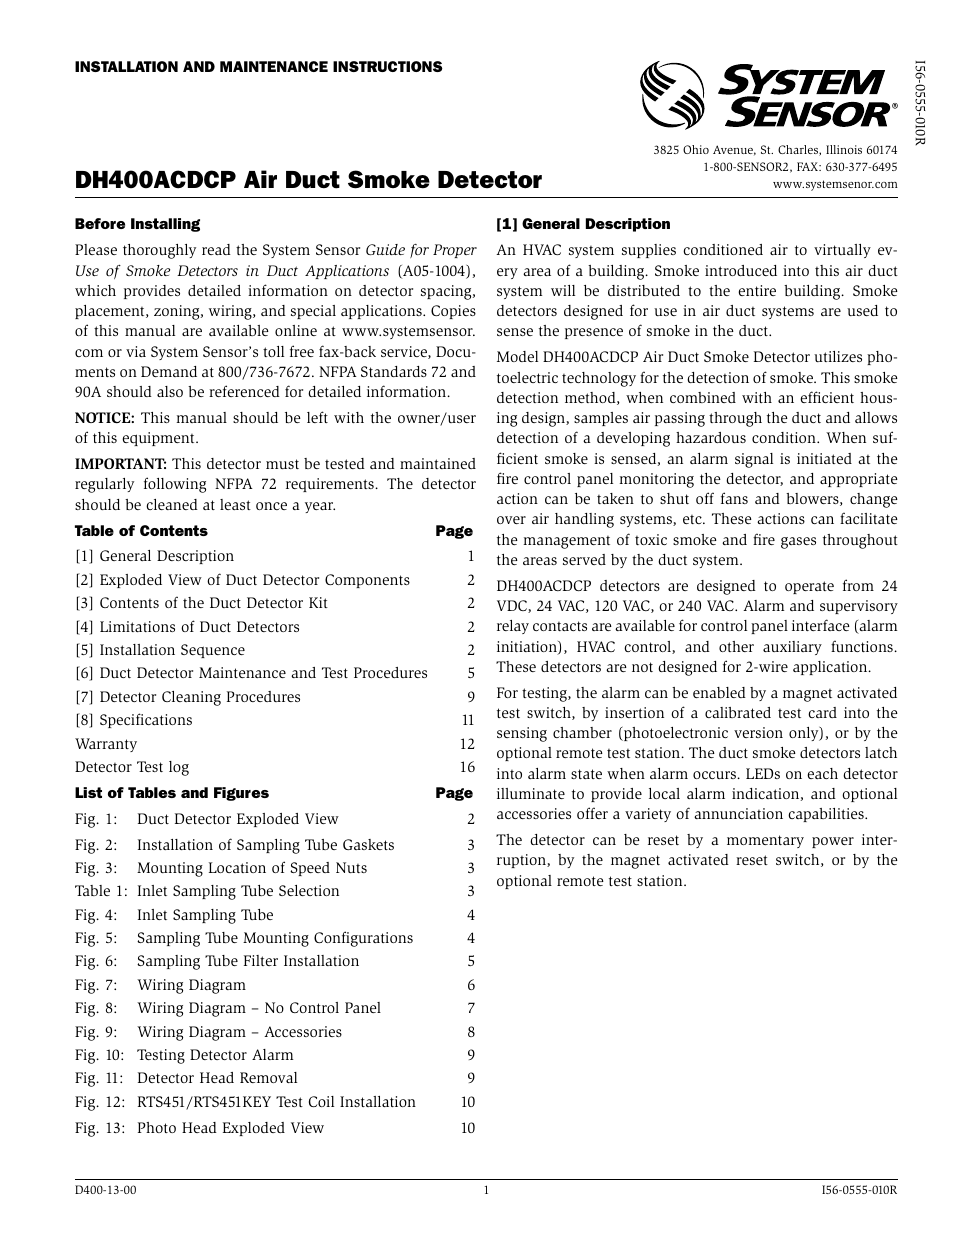 System Sensor Dh400acdcp User Manual